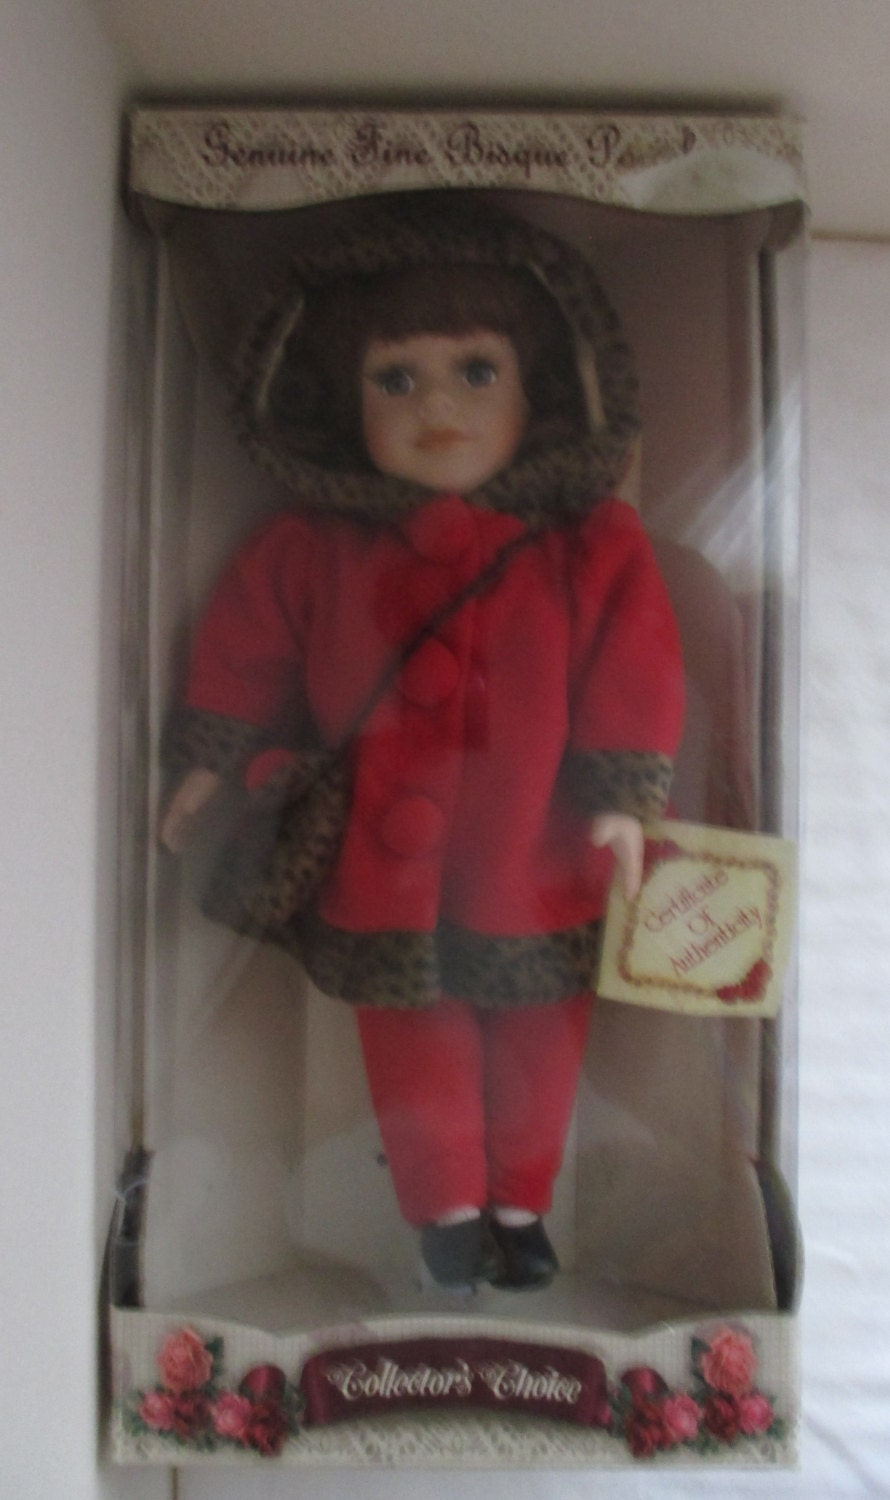 Collectors Choice Fine Bisque Porcelain Doll Limited Edition